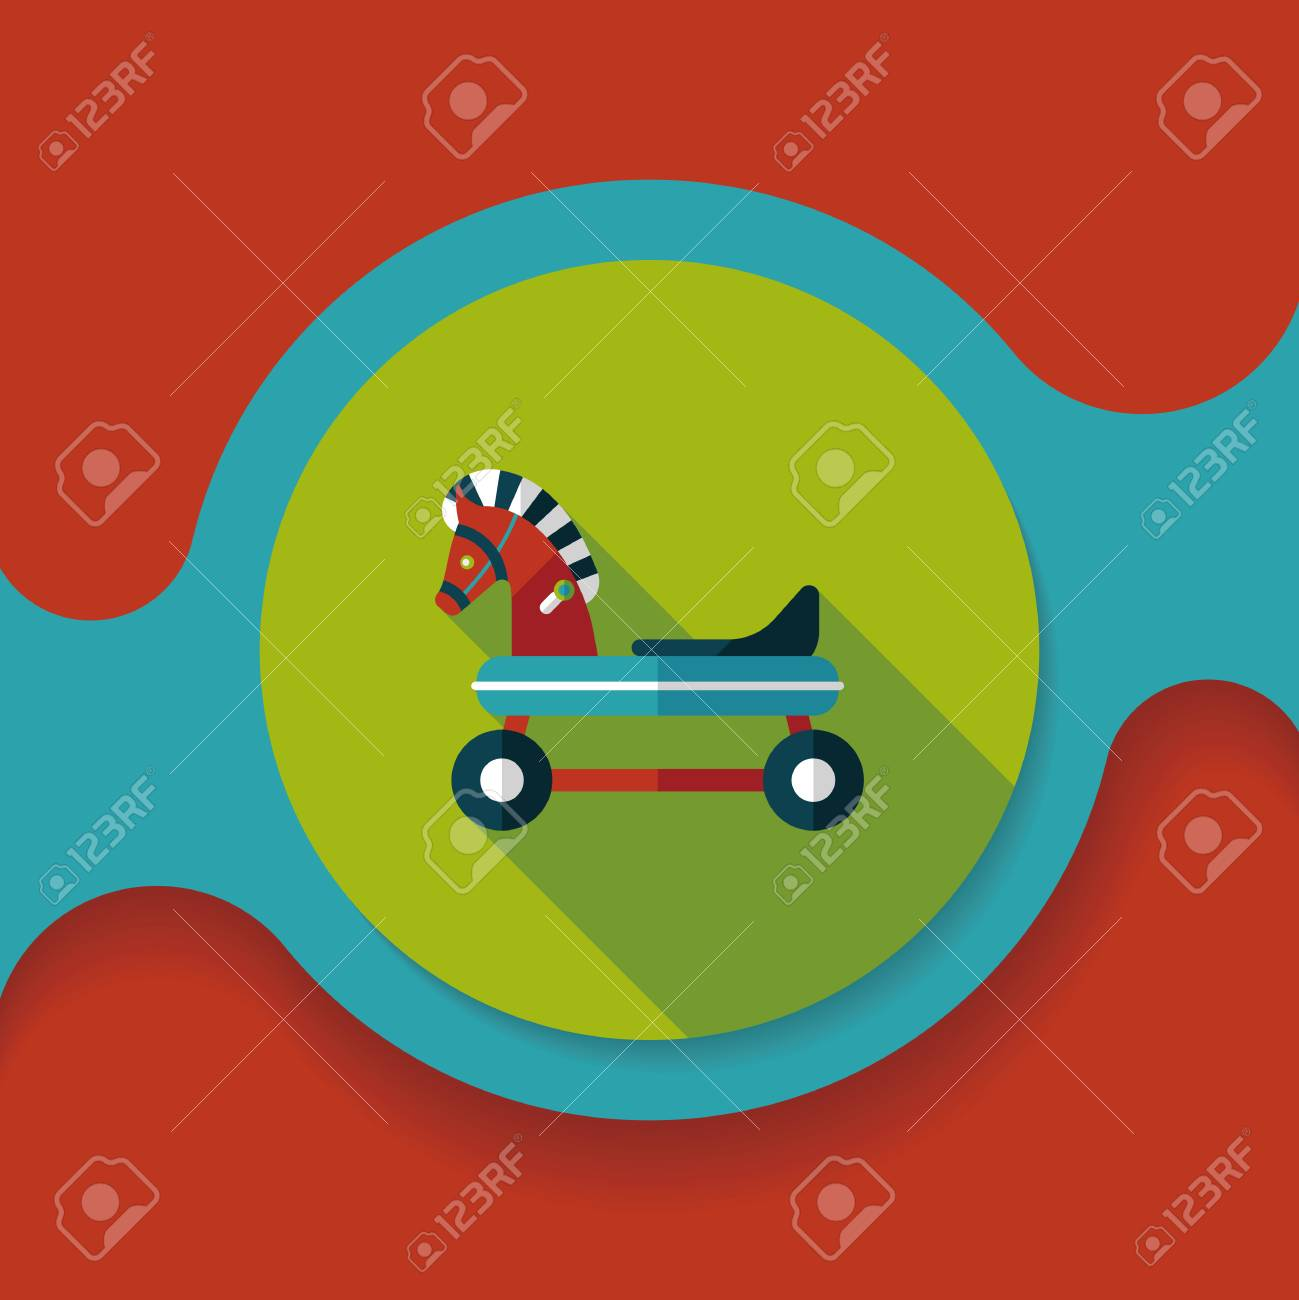 Horse Toy Car Flat Icon With Long Shadow Royalty Free Cliparts